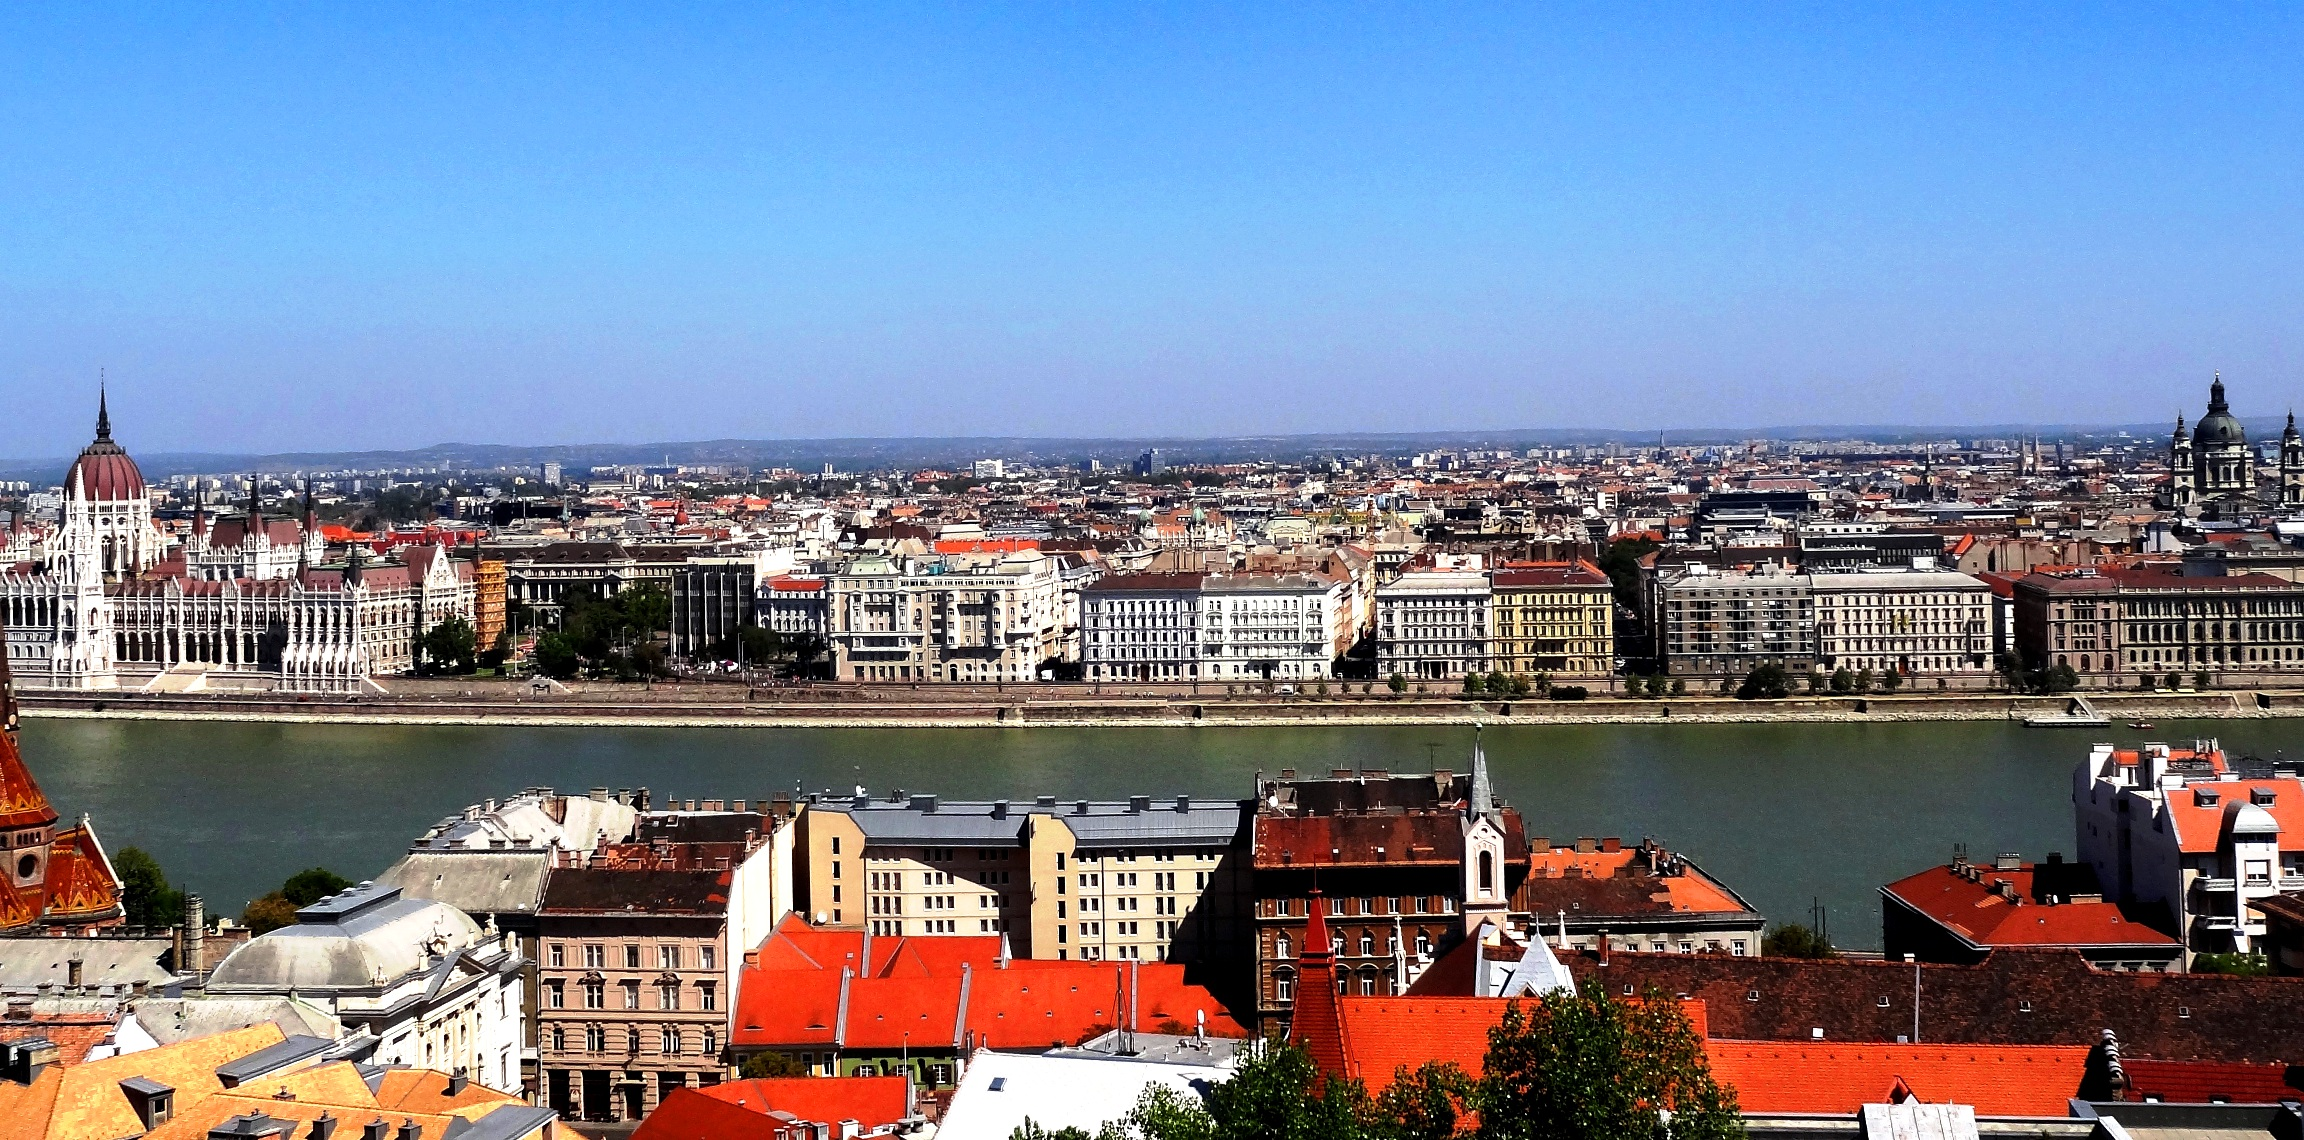 Danube River Cruise - Sailing Across The History